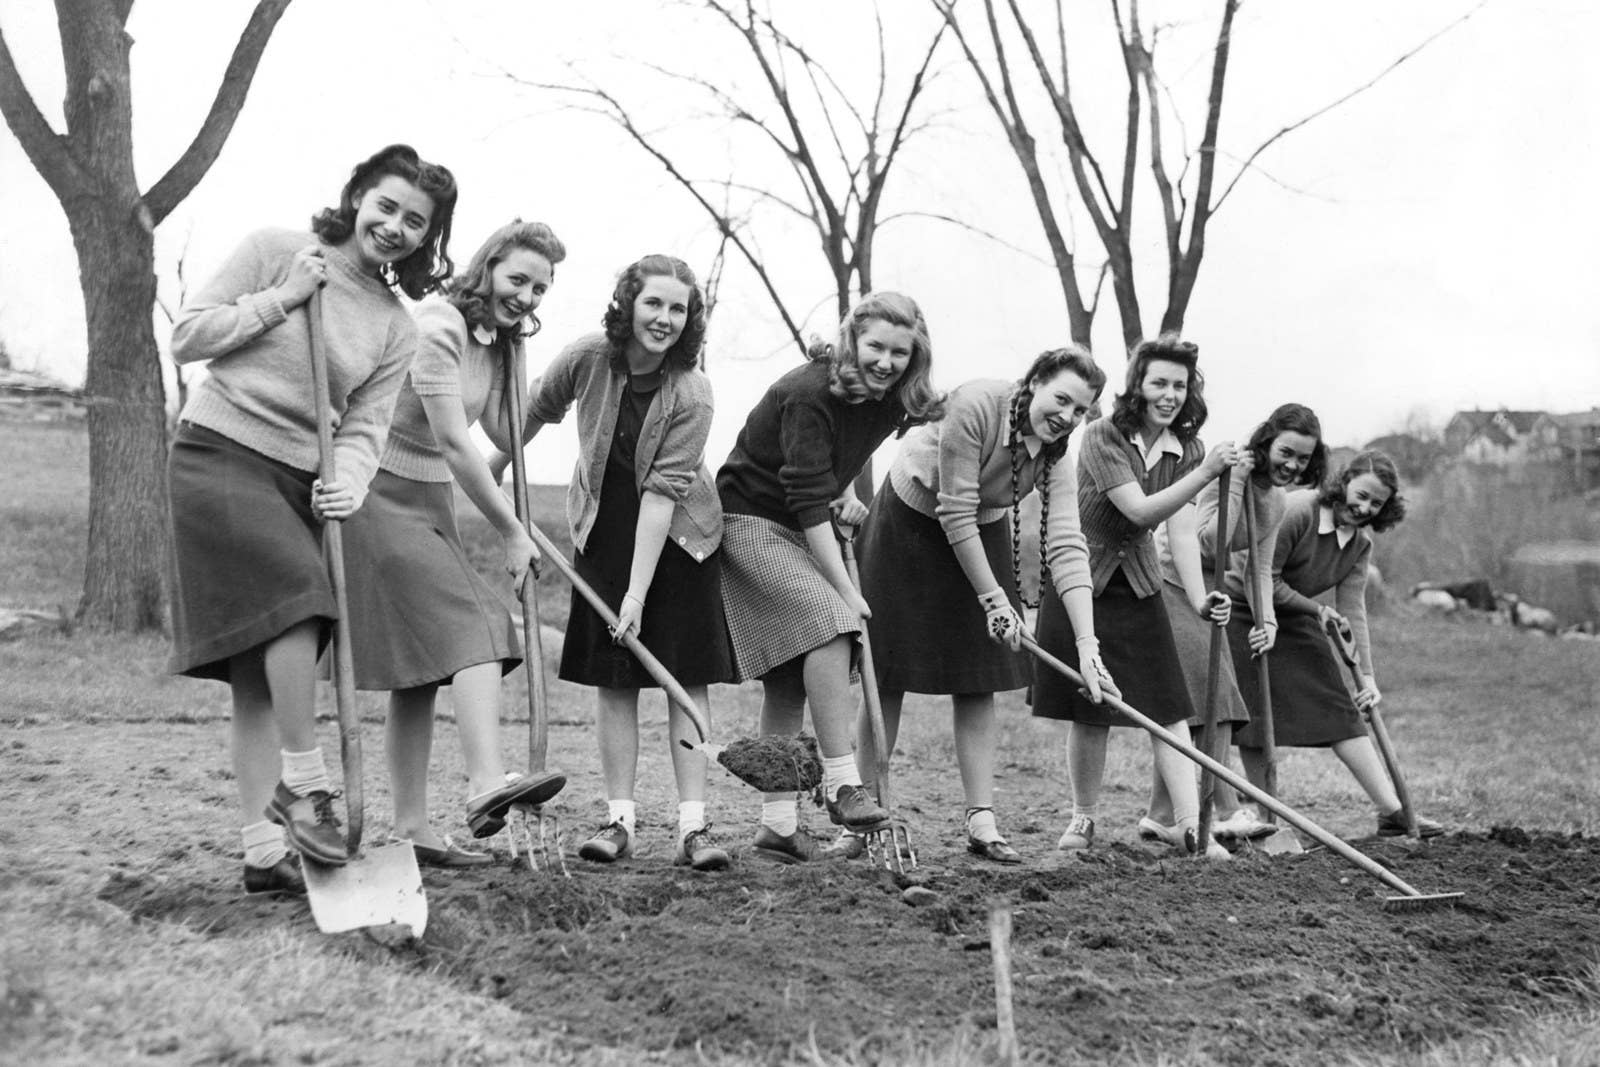 Freshmen girls at Good Counsel College in White Plains, New York, break ground for a WWII victory vegetable garden on April 23, 1942.